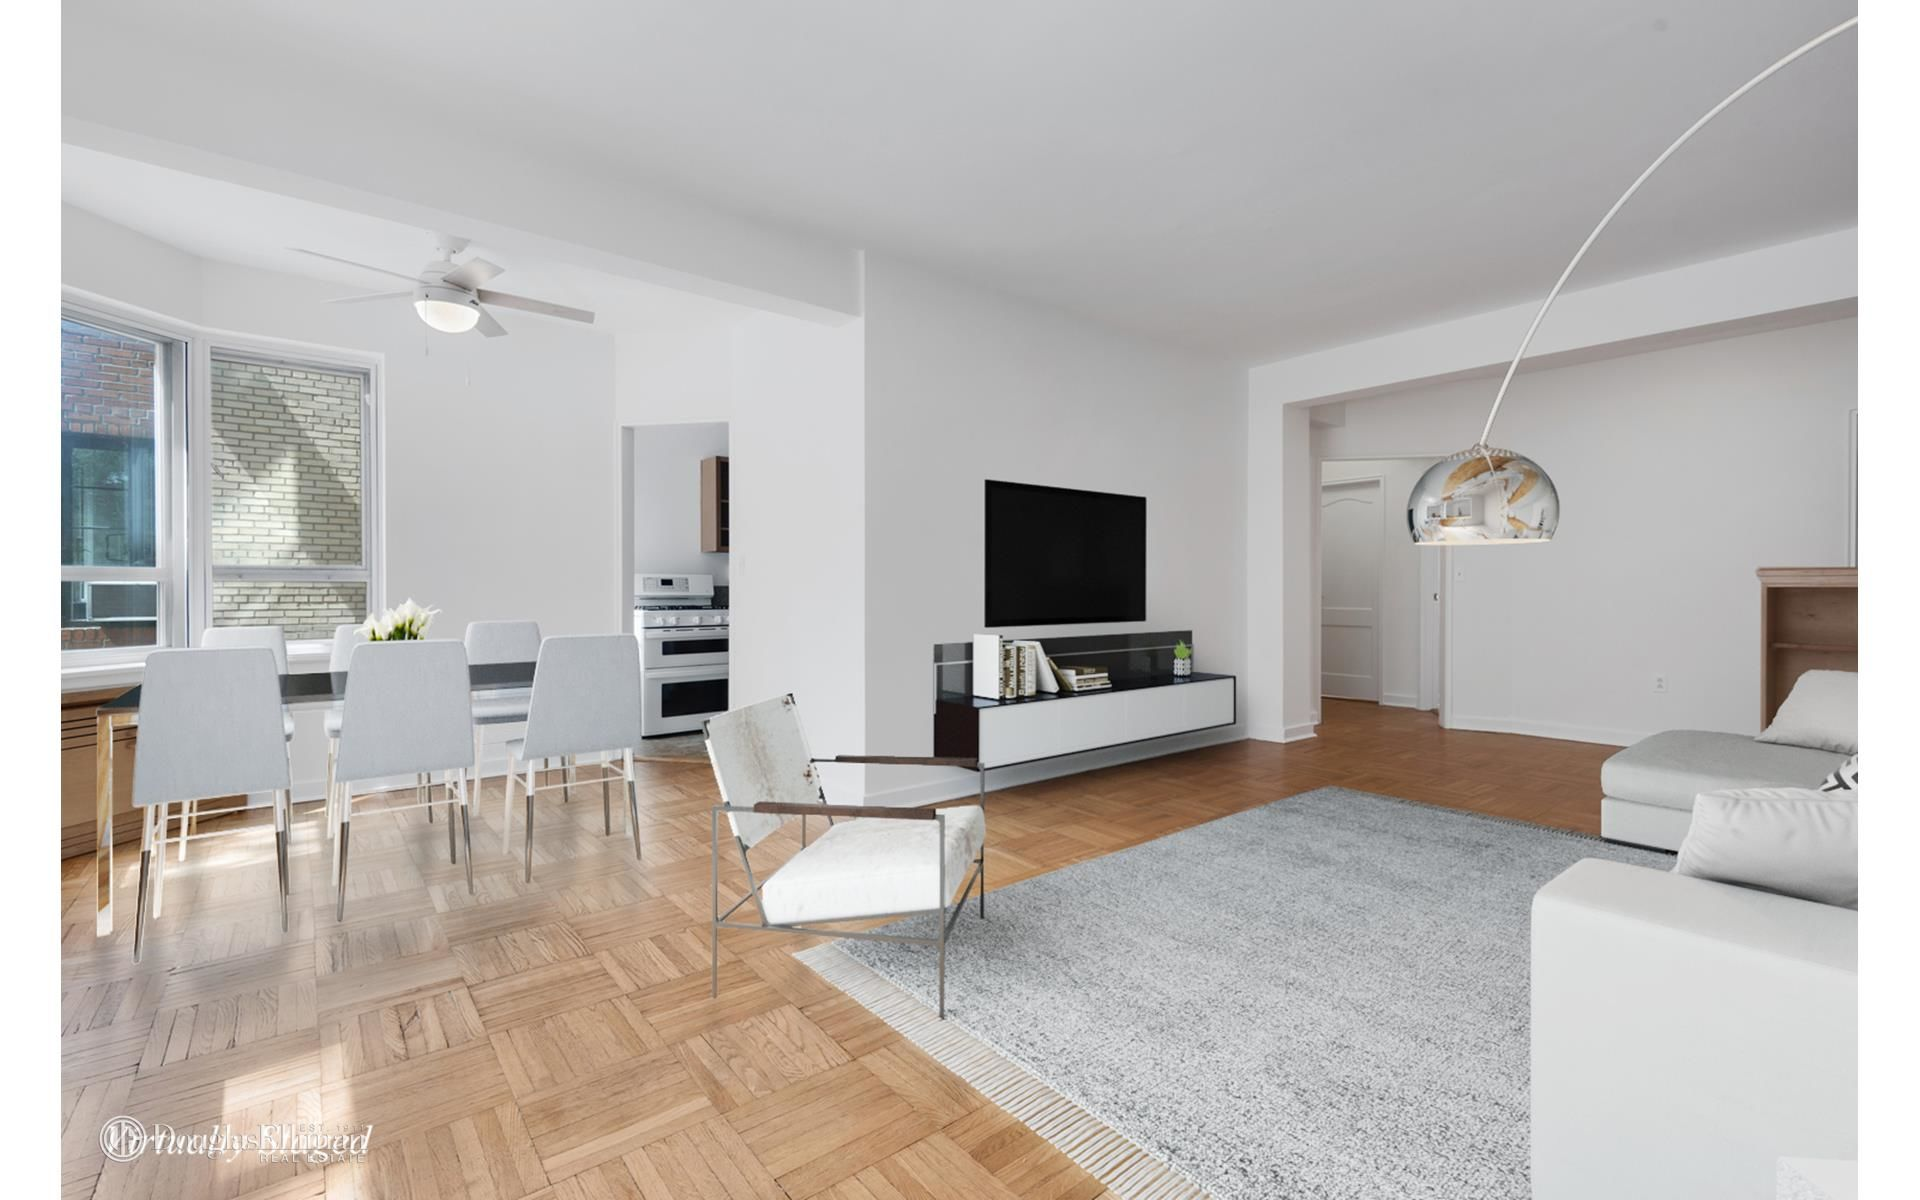 130 8th Ave, APT 2A Photo 1 - ELLIMAN-3787631